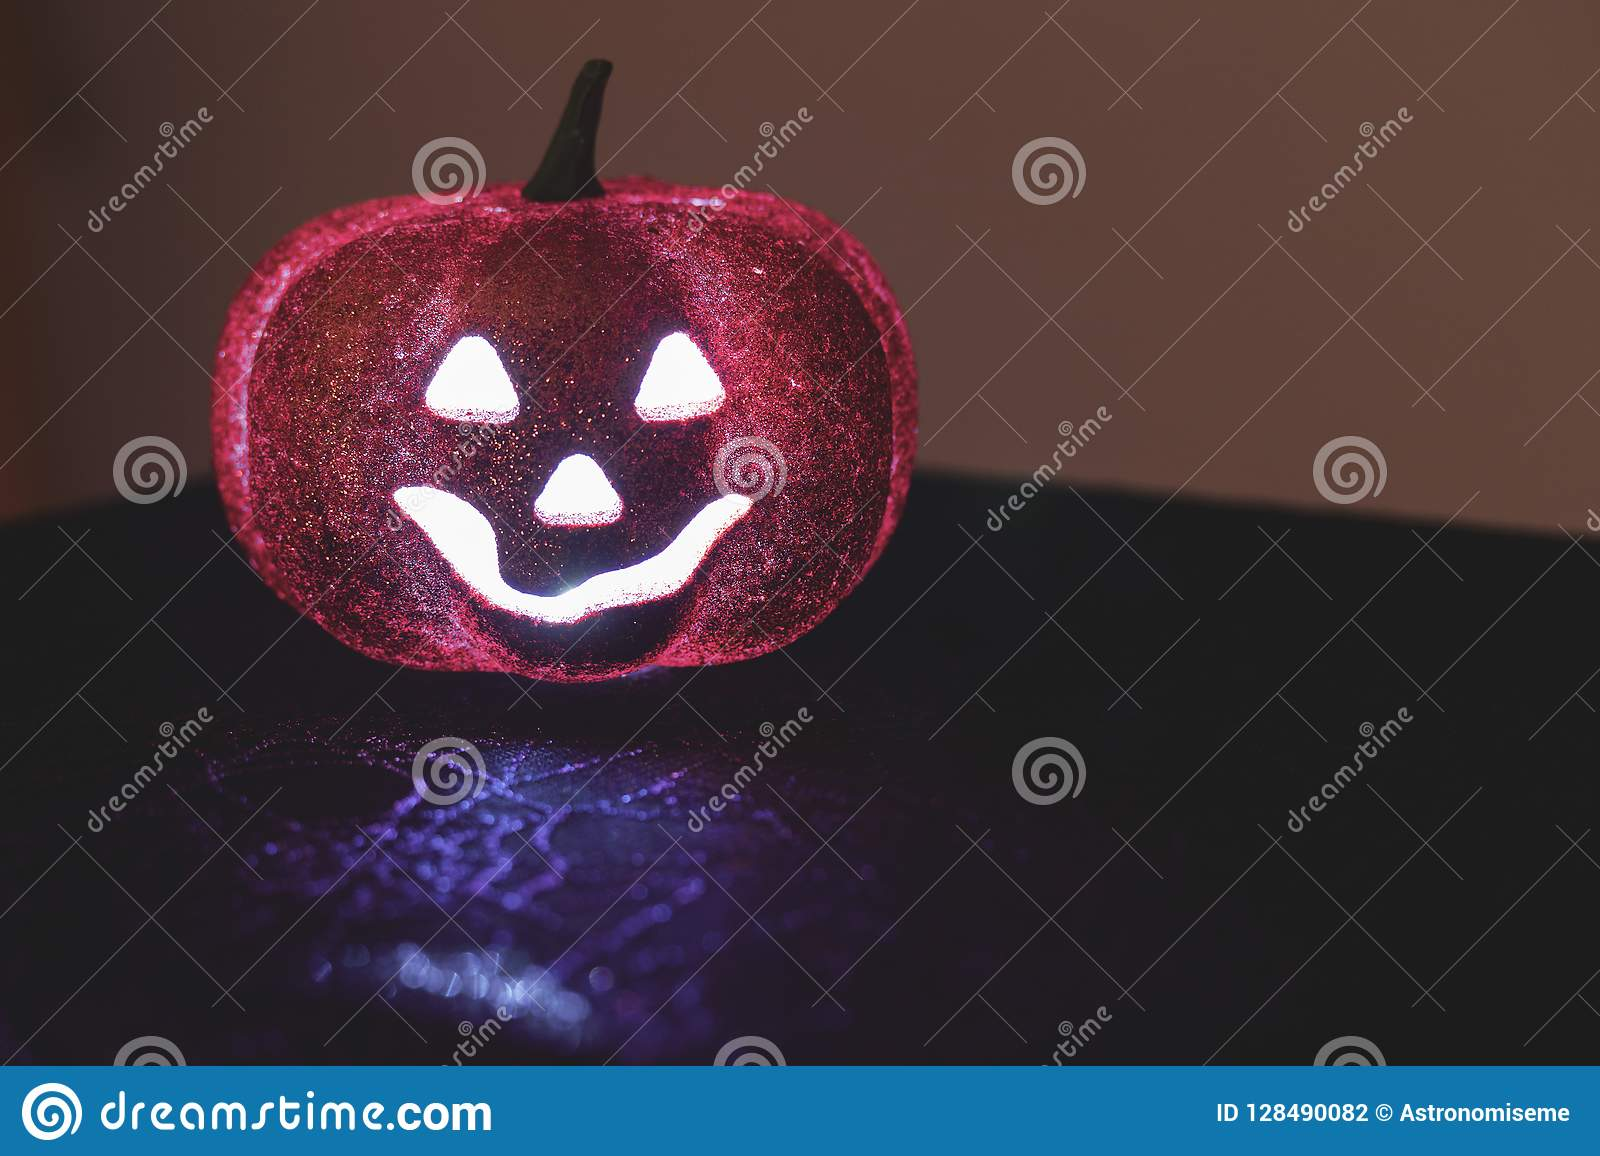 Halloween Pumpkin Decoration Stock Photo Image Of Glittering